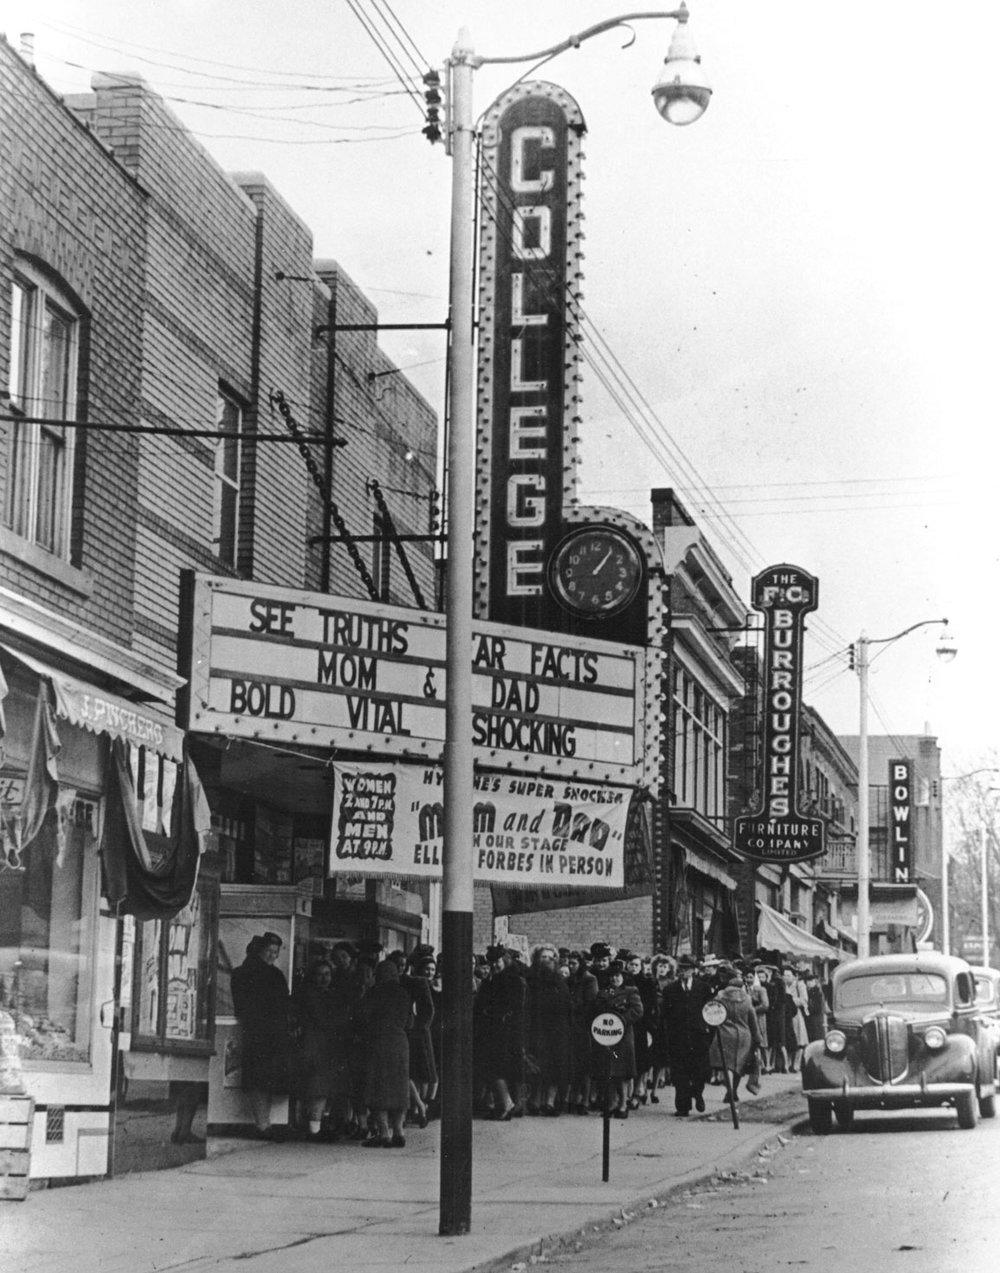 College Theatre at 310 Colborne Street, with seating for 550 people, opened on 6-April-1939 The theatre closed in 1963. In 1964 it became Talk of the Town Billiards.  Image courtesy of the Brant Historical Society